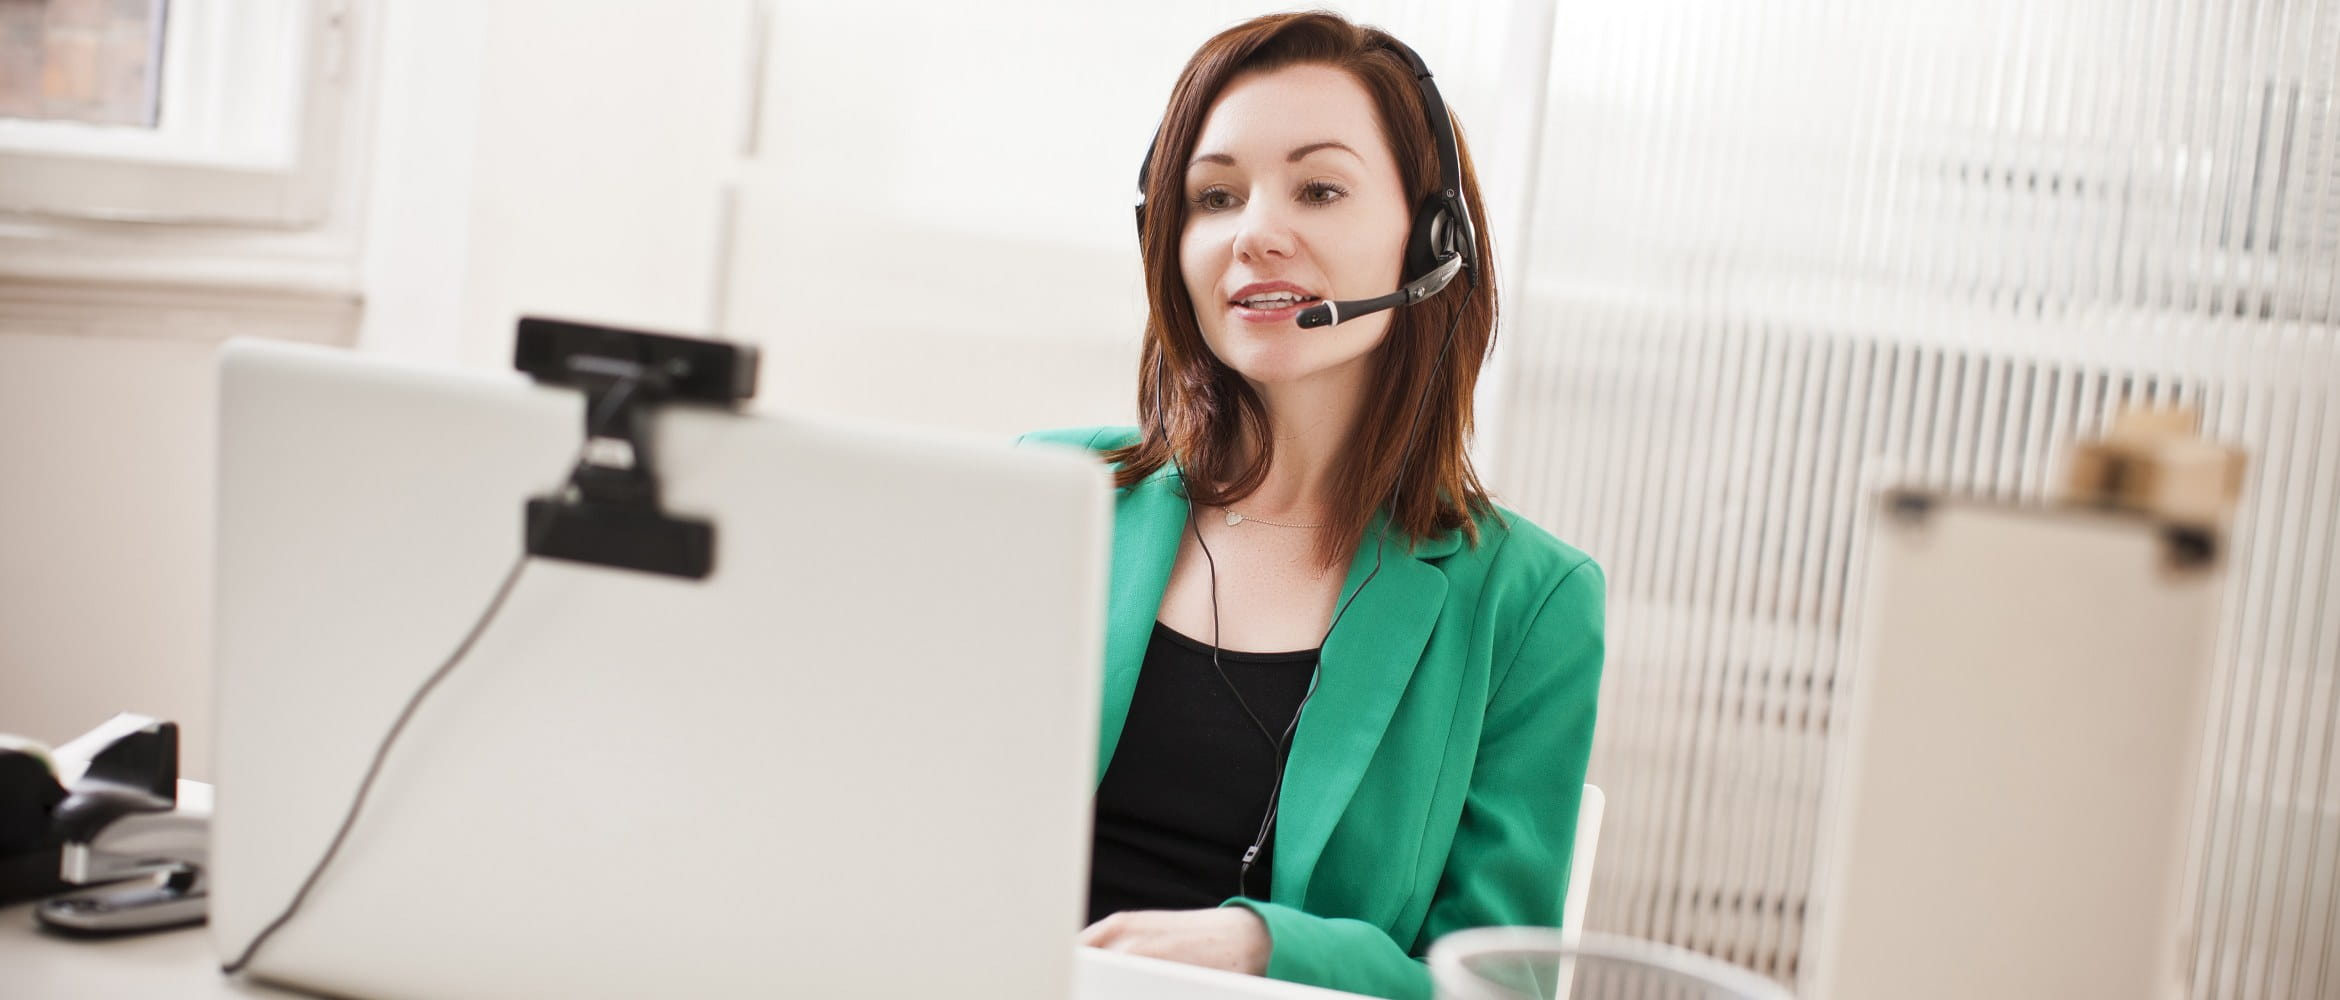 A woman wearing a microphone headset and a green business suit conducts a remote online video conferencing meeting in a home or small office environment.